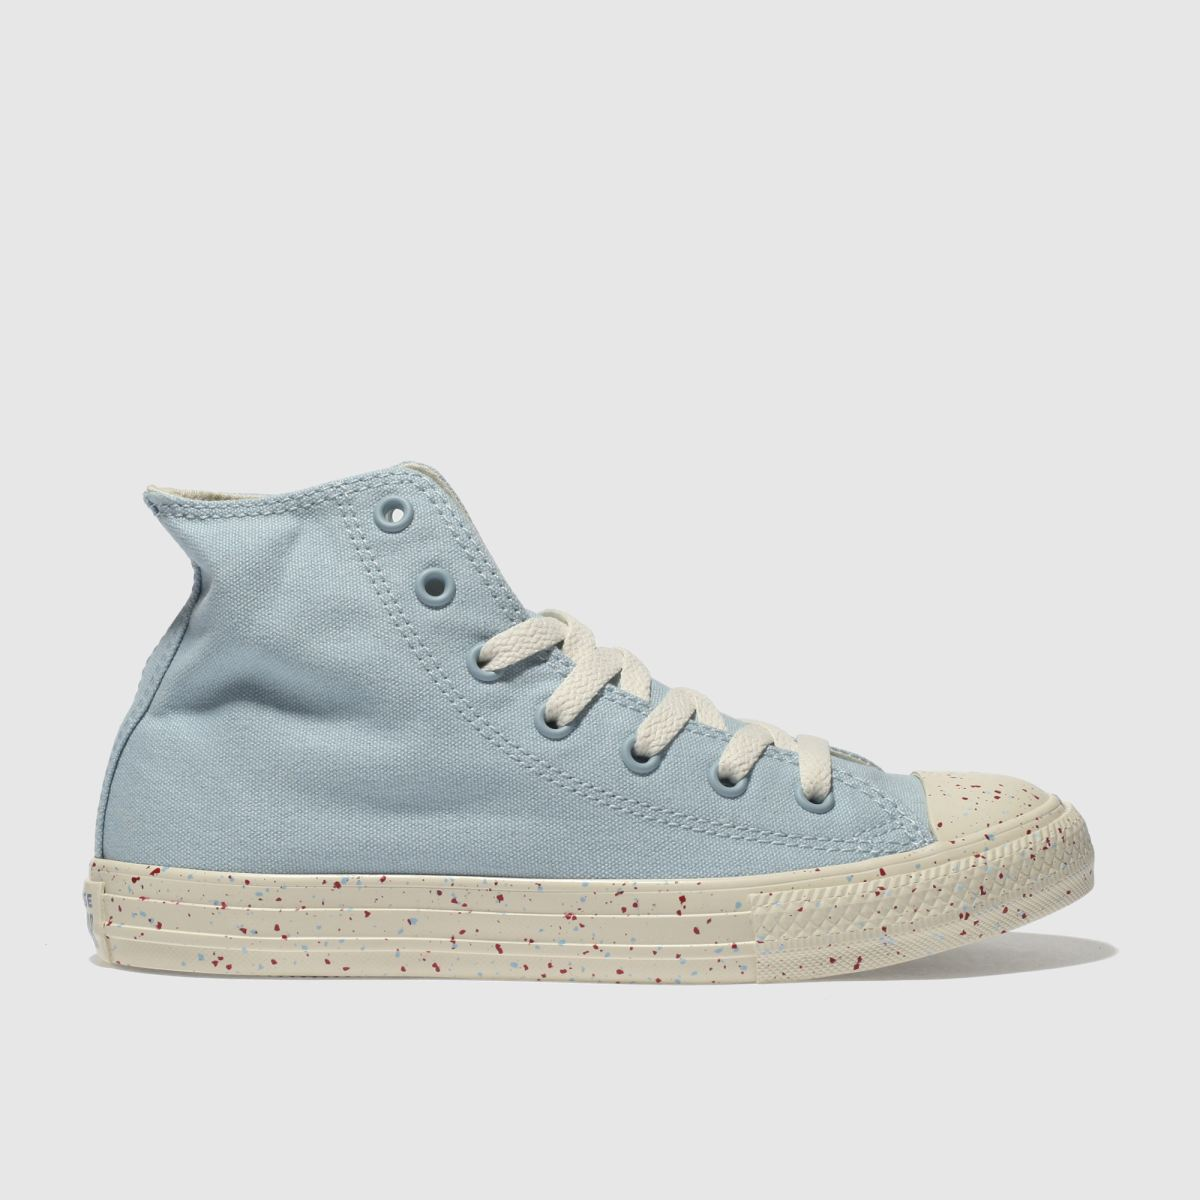 Converse Pale Blue Chuck Taylor All Star Hi Unisex Youth Youth